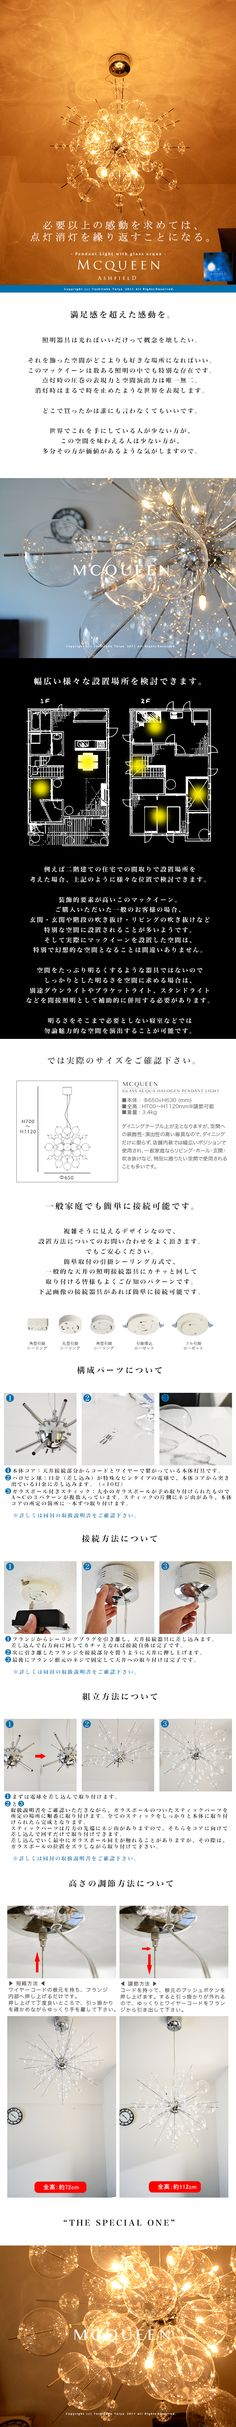 japanbridge: Pendant mounting - Purchase now to accumulate reedemable points! Bedroom Doors, Entrance Doors, Pendant Lights, Bubbles, Glass, Design, Ceiling, Pendant Light Fixtures, Hanging Lights